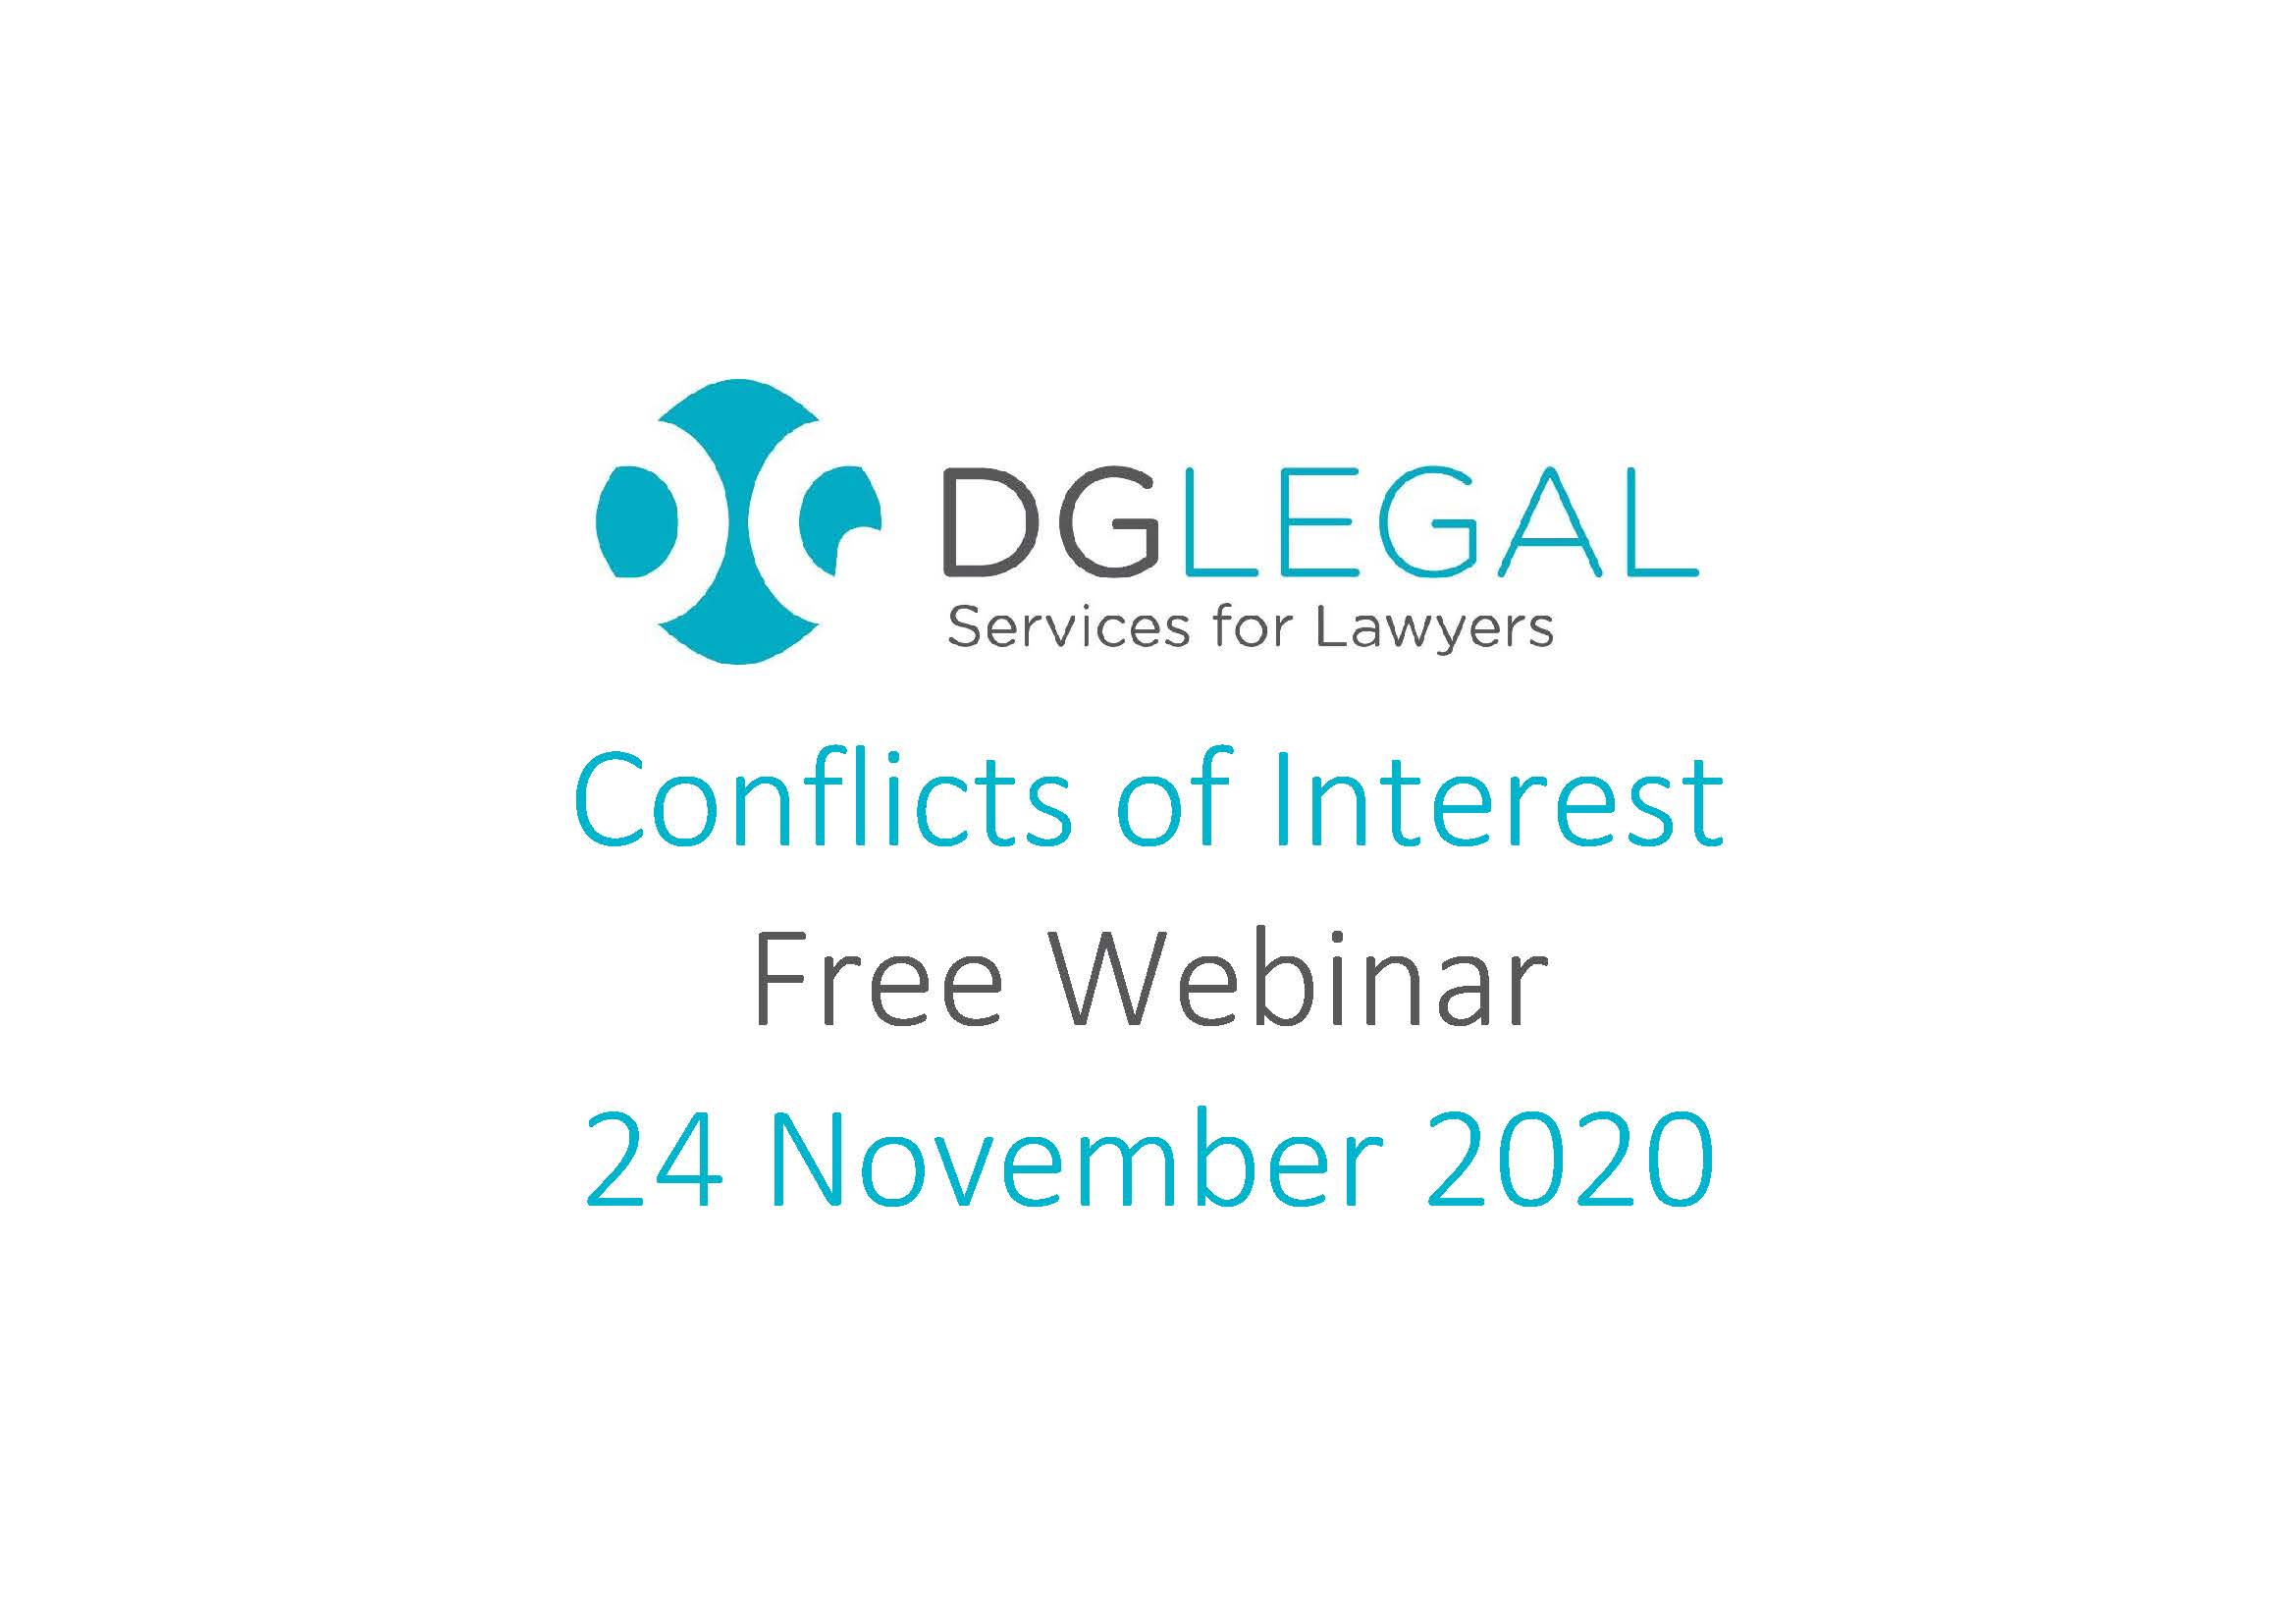 Conflicts of Interest Webinar